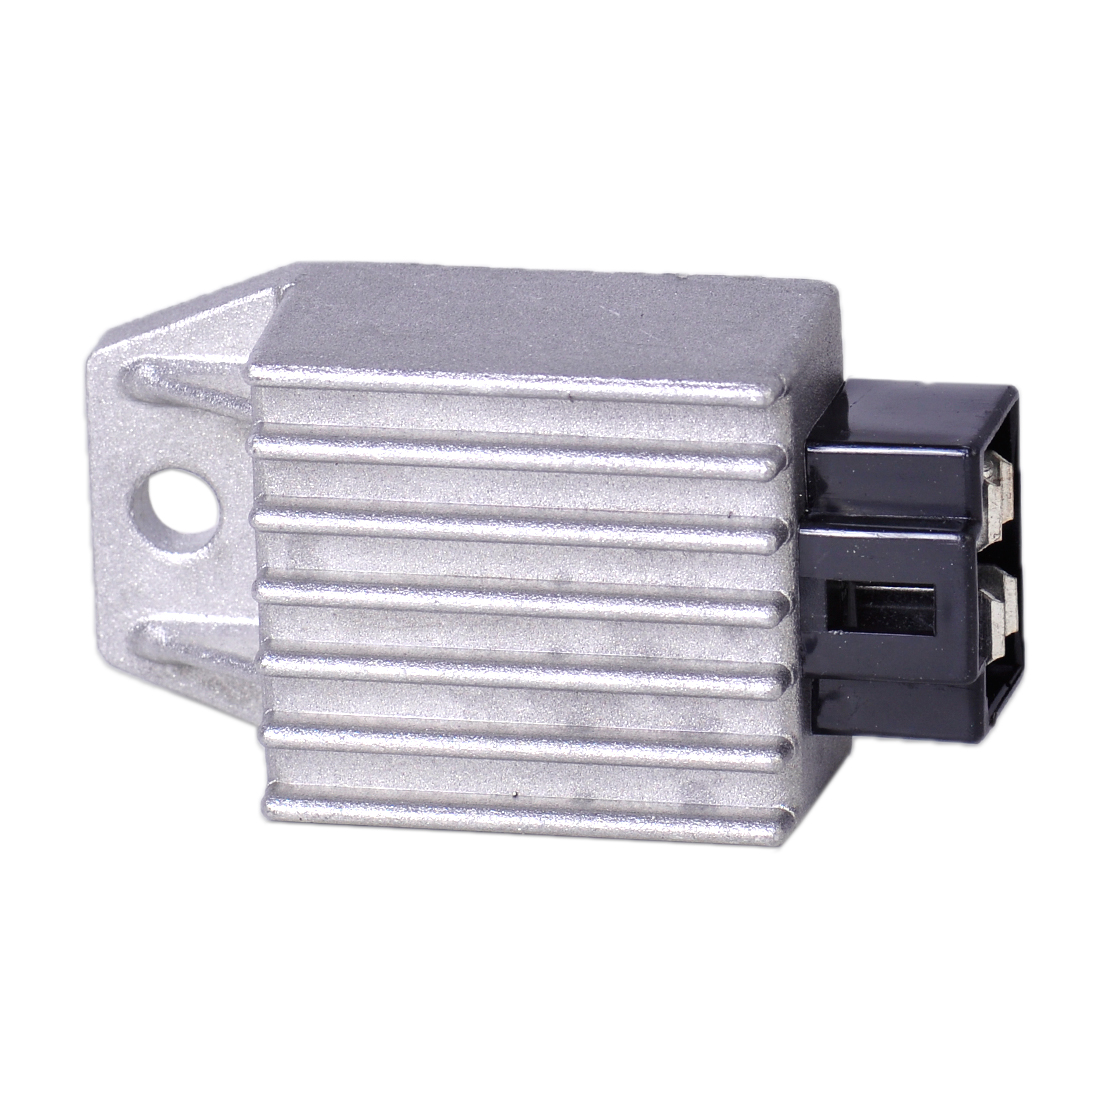 New Motorbike Voltage Regulator Rectifier 12V 4Pin fit for Buggie with GY6 50cc 125cc 150cc Moped Scooter ATV Gokarts